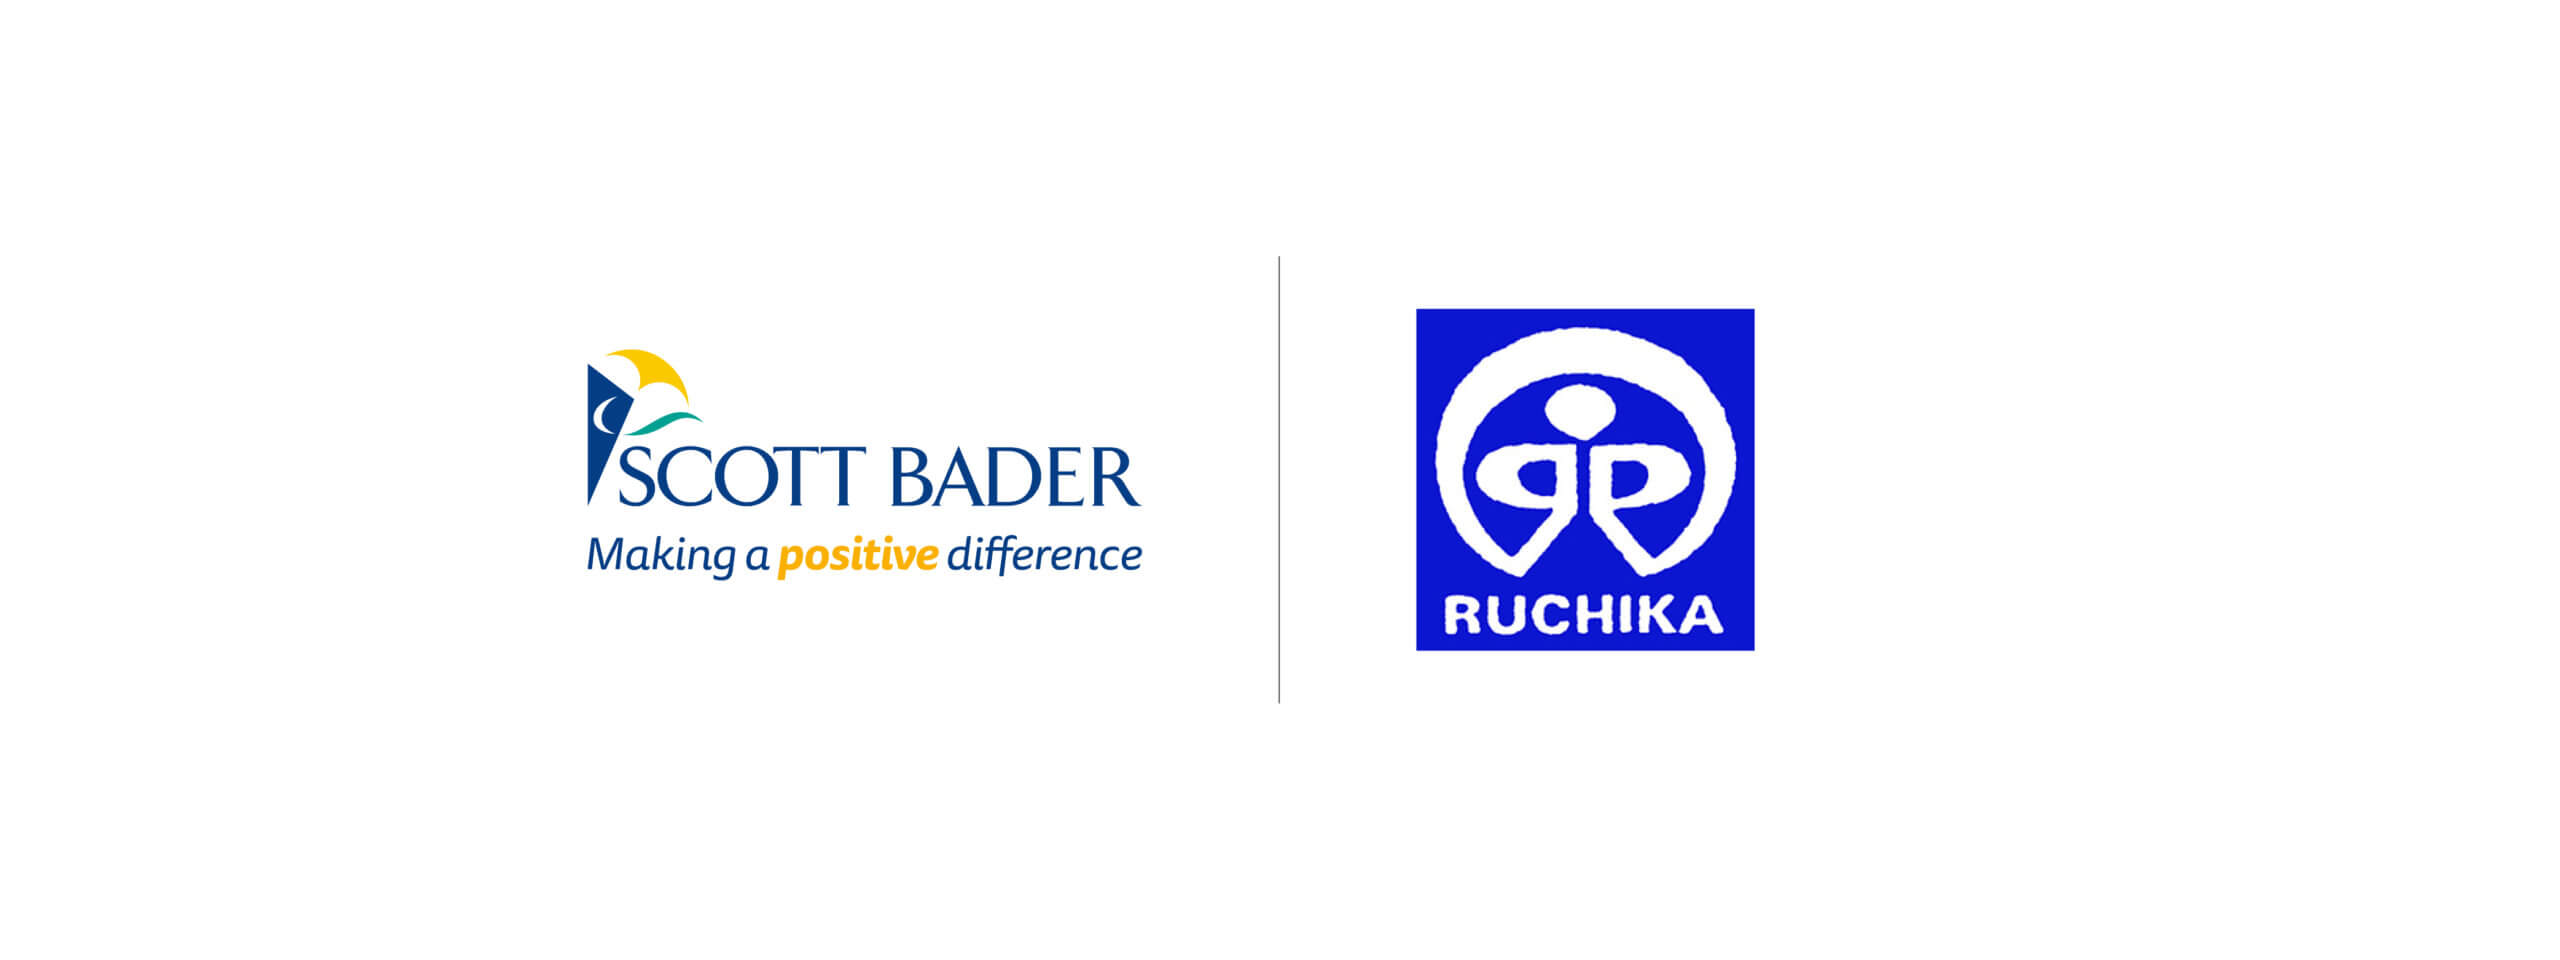 Success stories from the Ruchika Foundation India